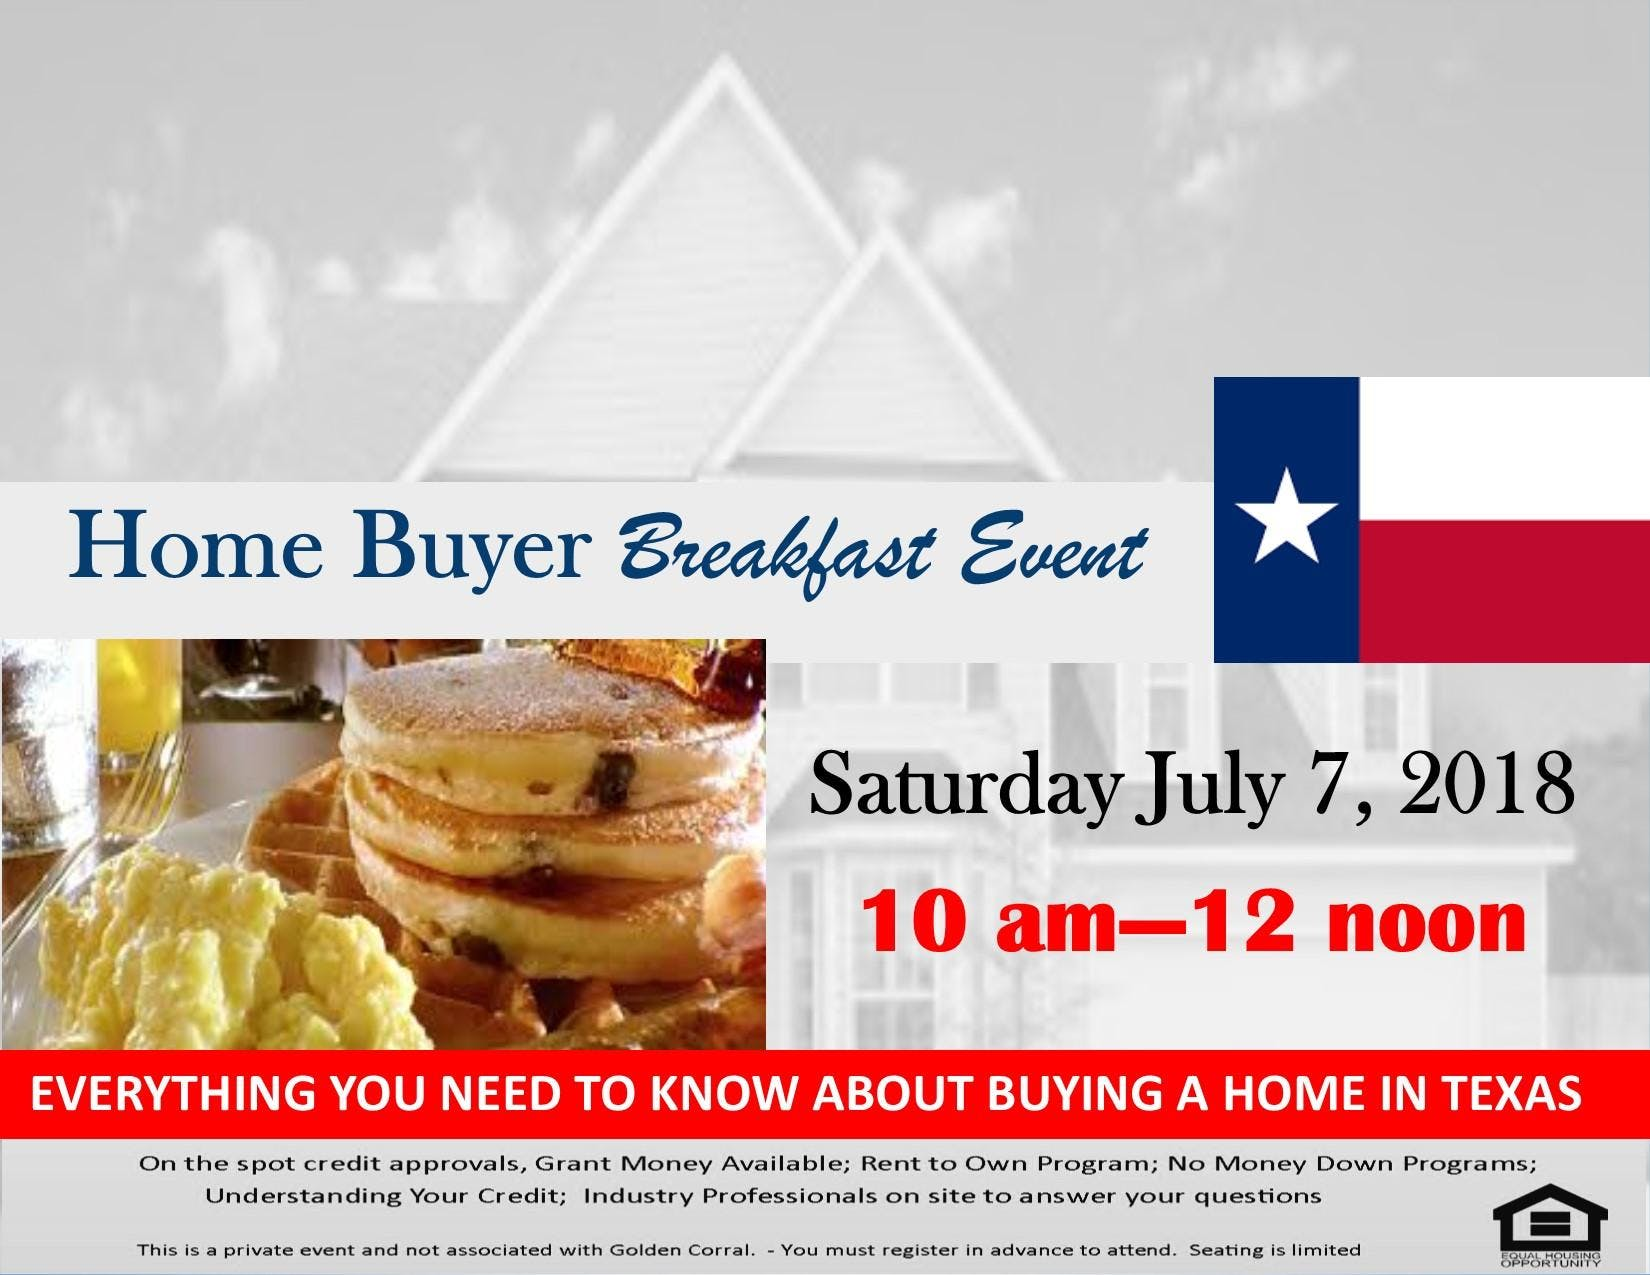 North TX Statewide Home Buyer Event with Roberts Group - 7 JUL 2018